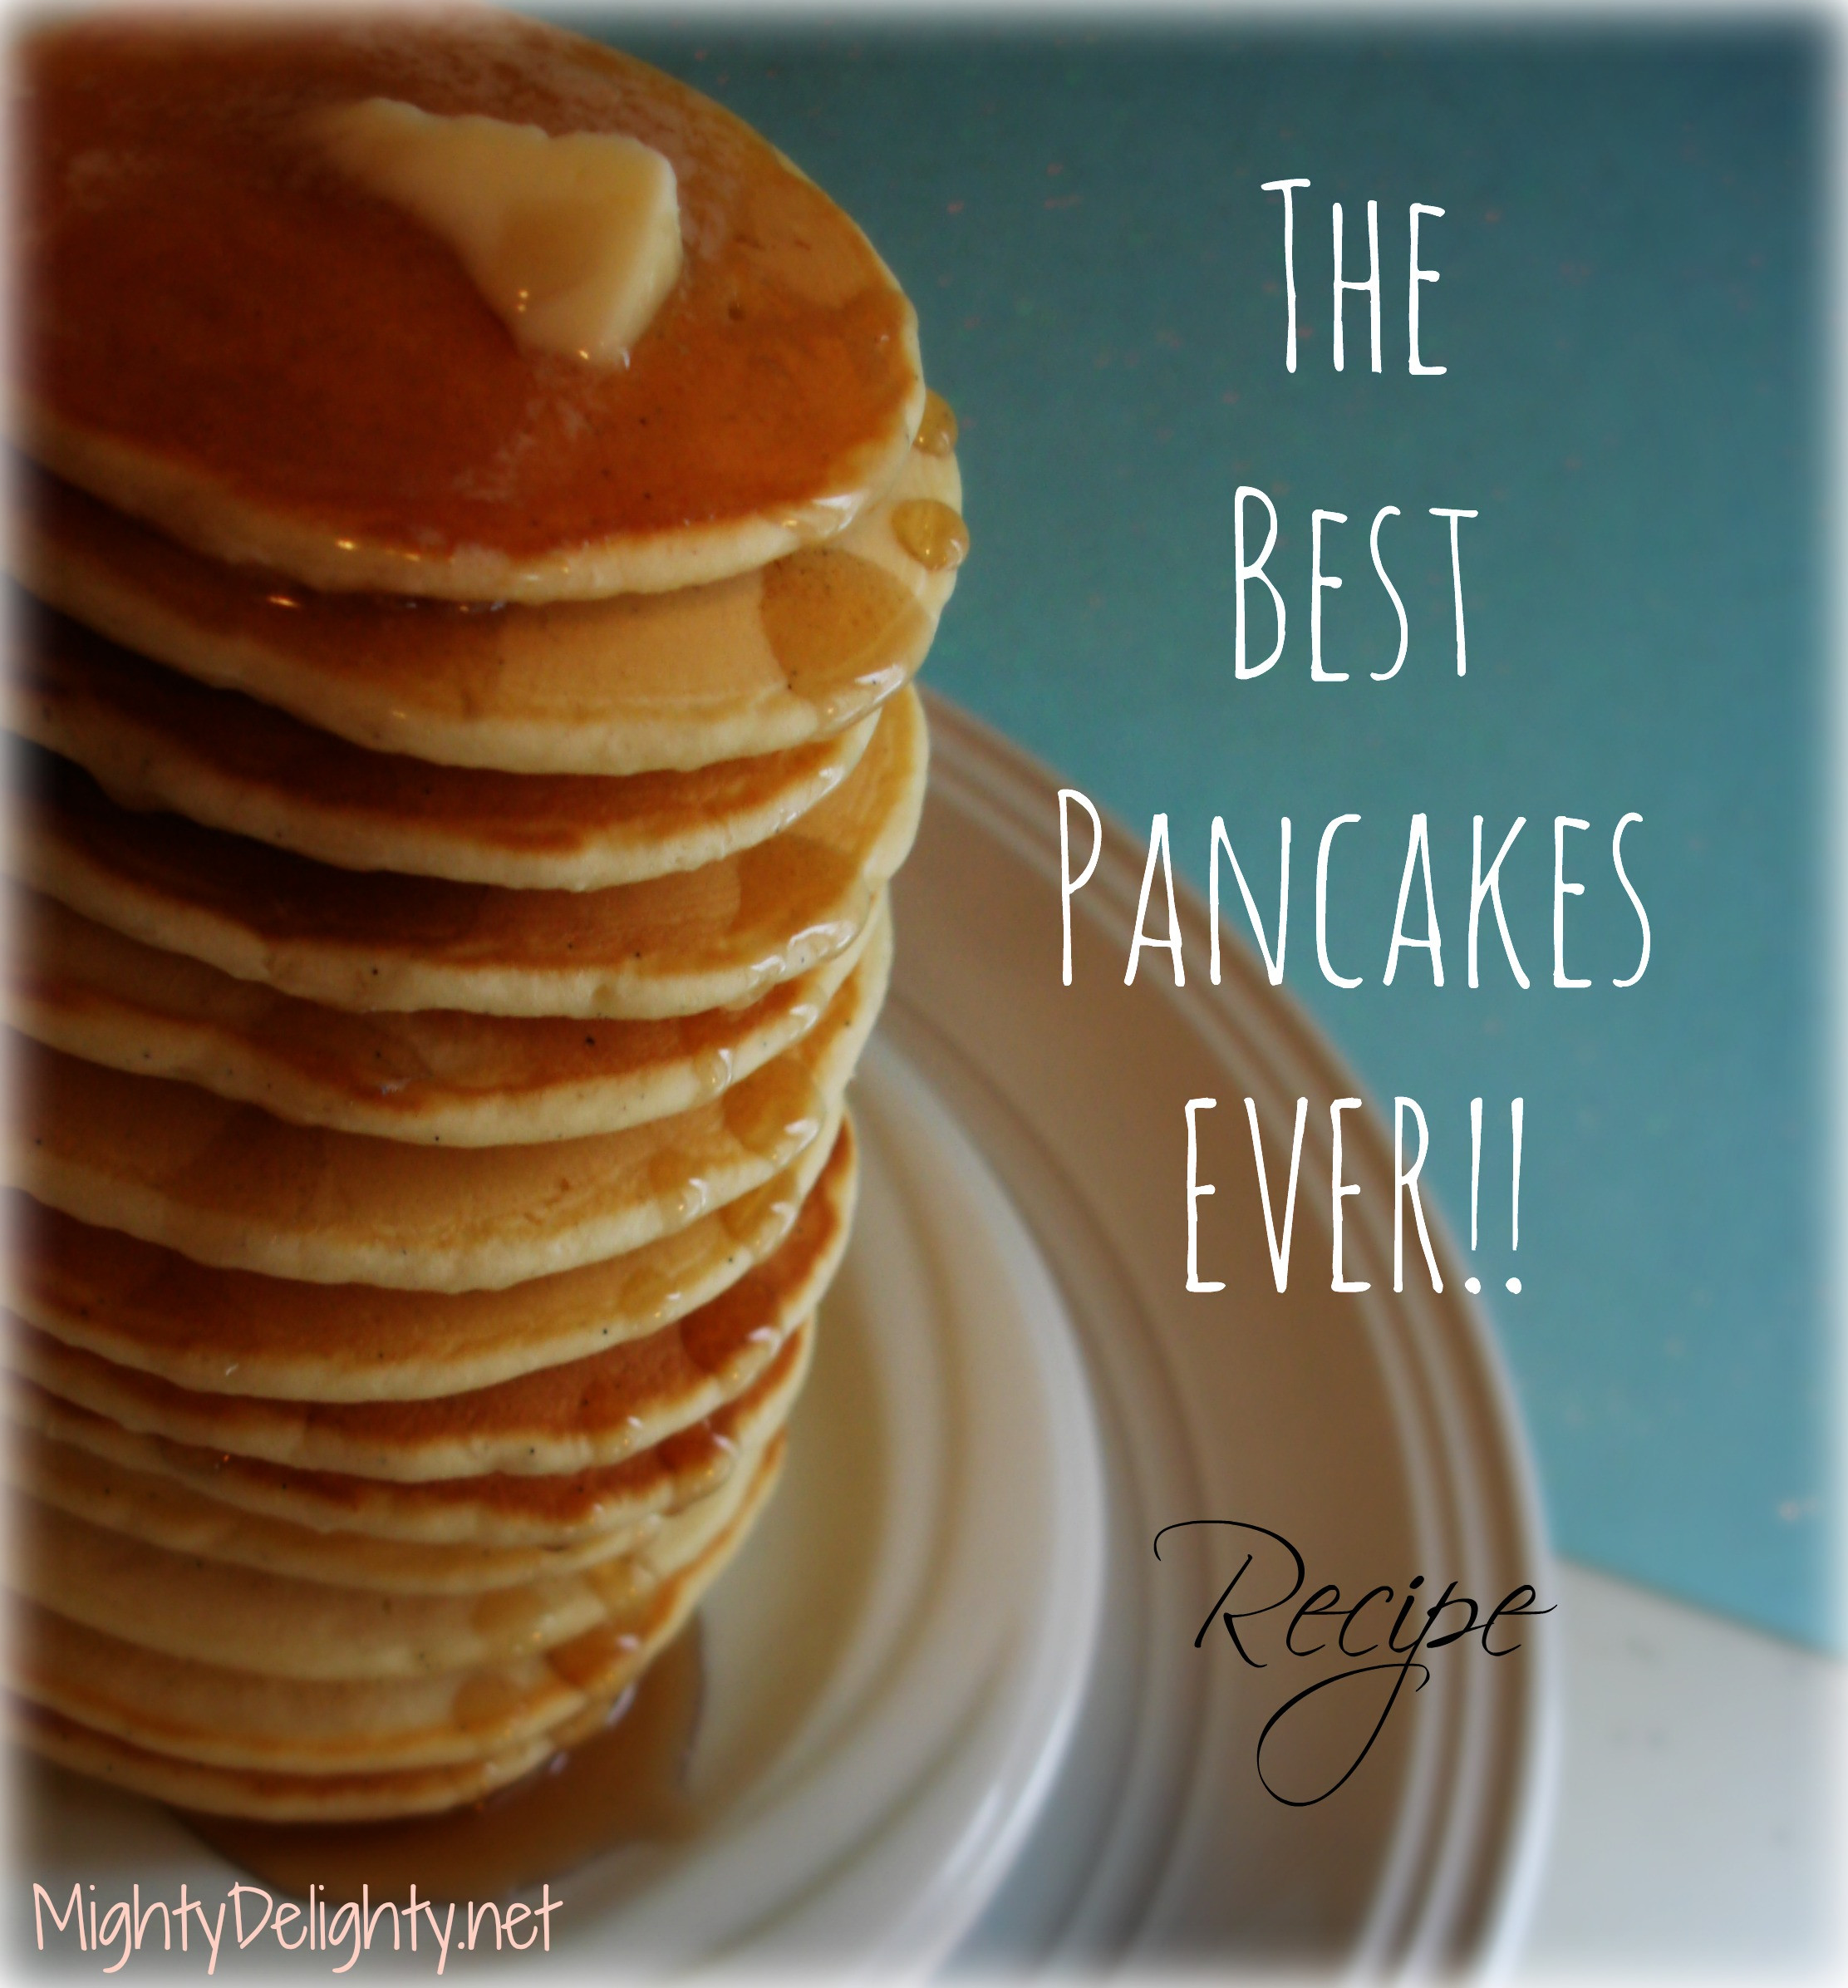 Best Pancakes Ever  The best pancakes ever – Mighty Delighty